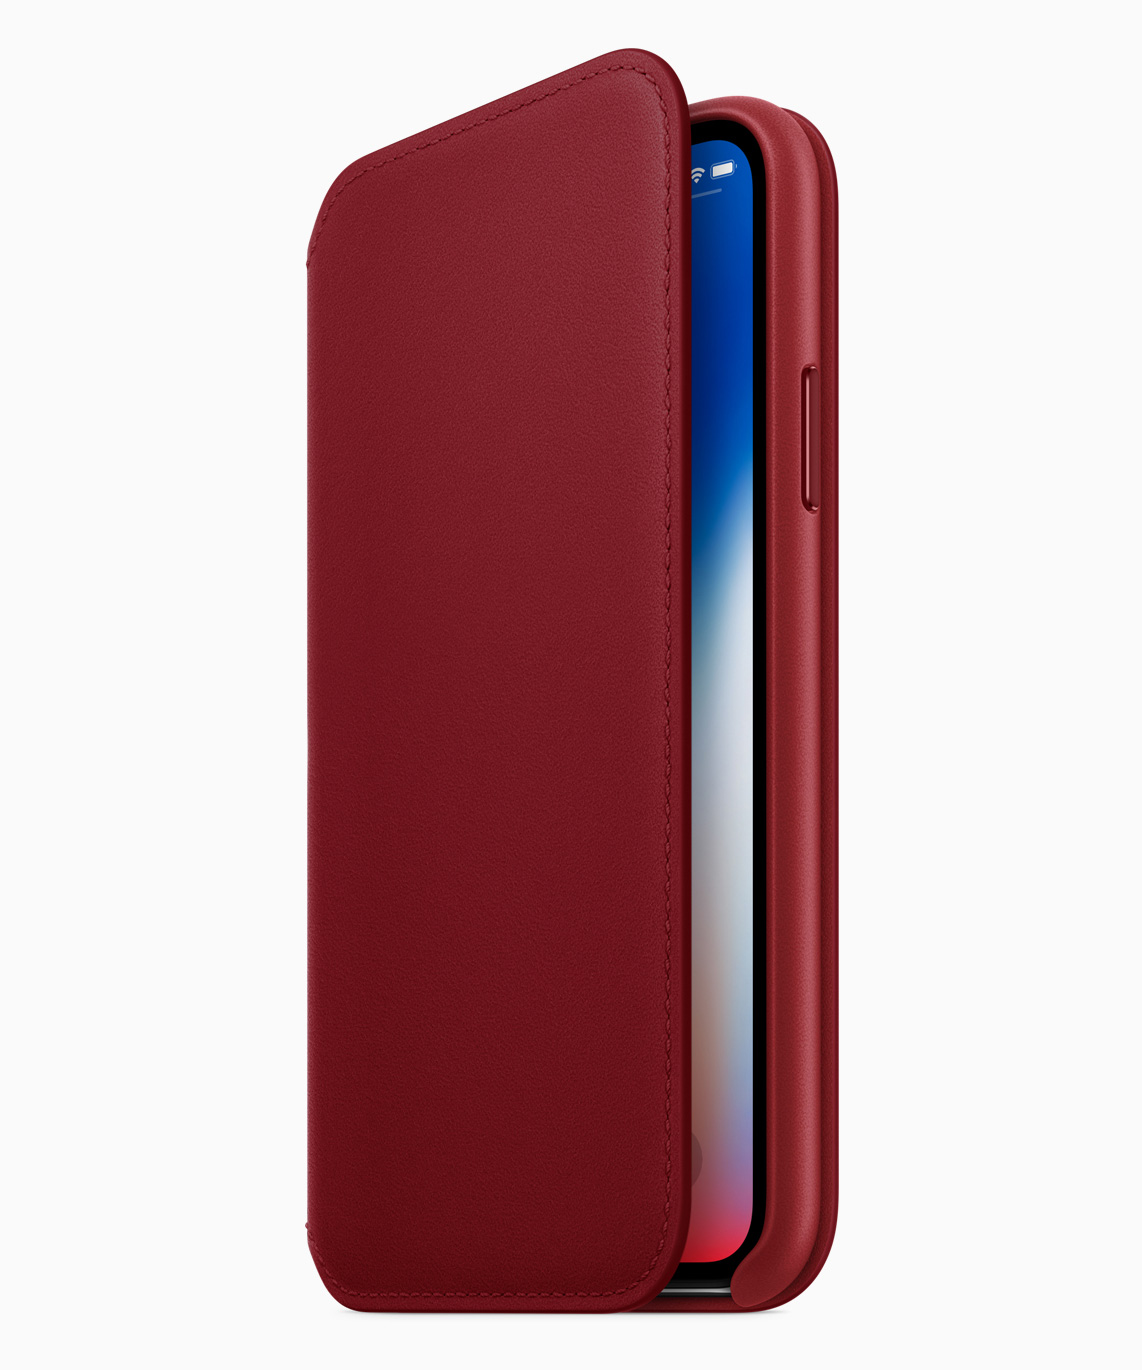 iphone8_iphone8plus_product_red_folio_case_041018.jpg